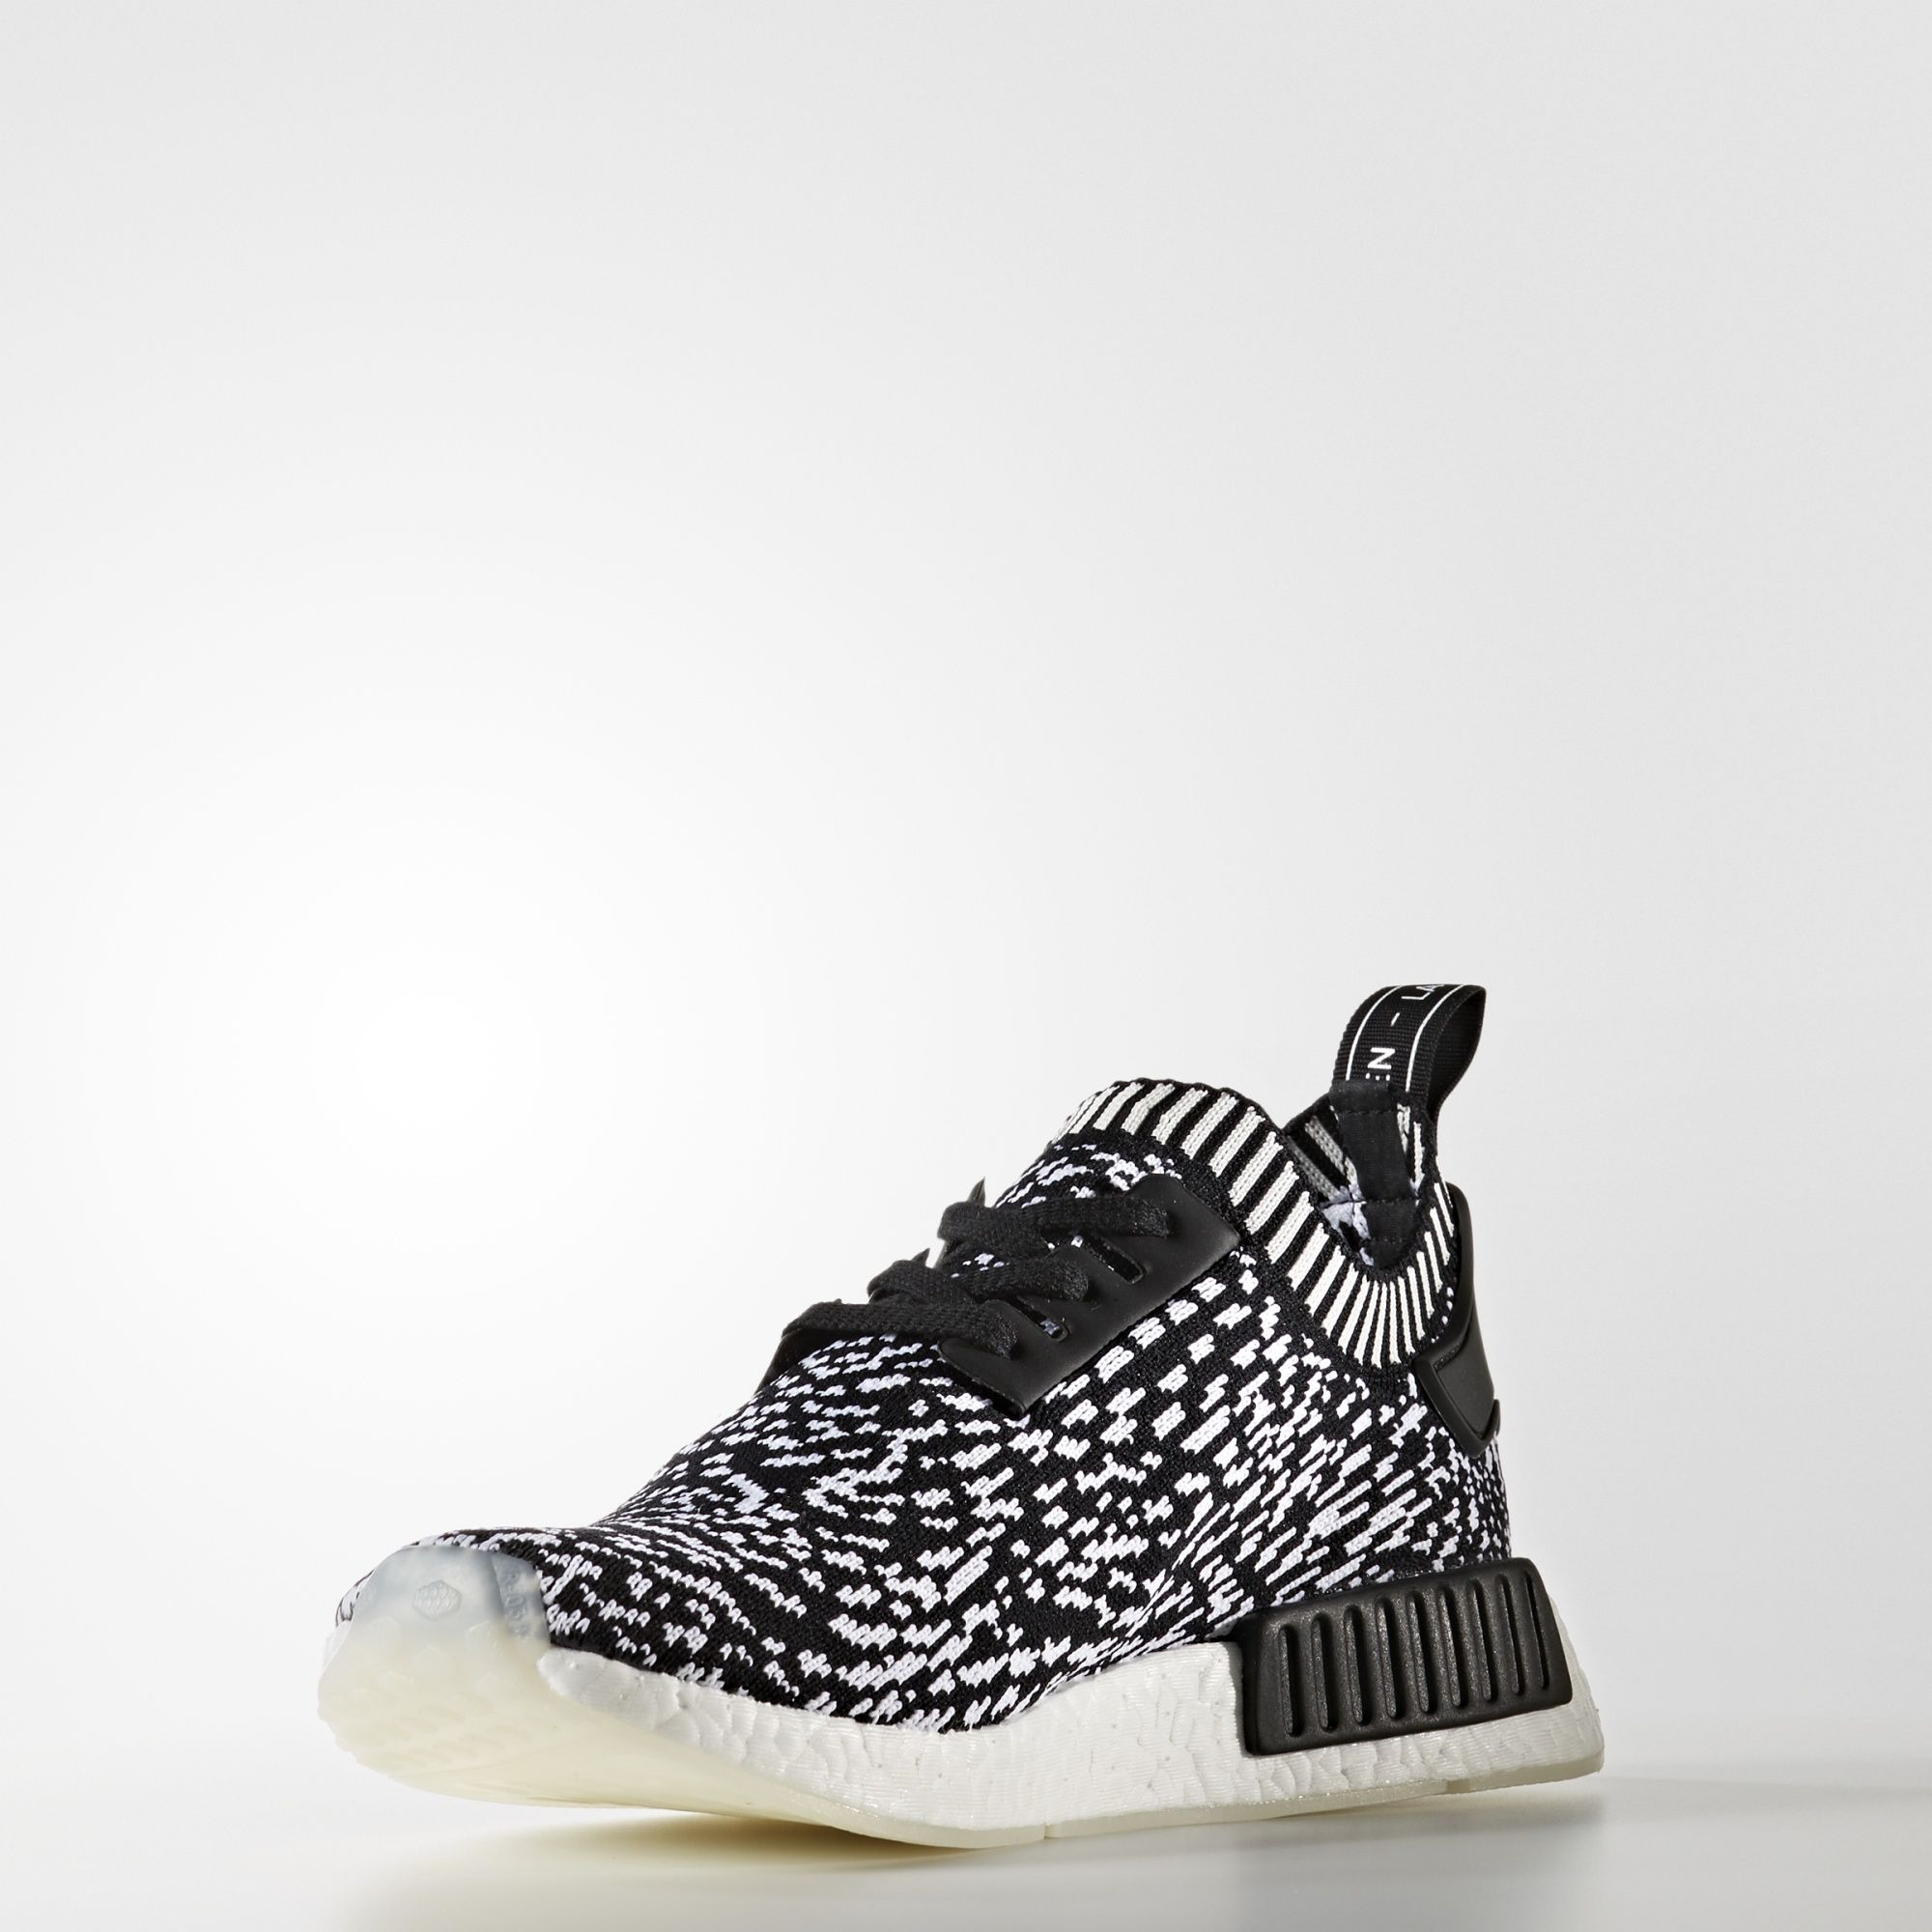 premium selection 55002 1517f Authentic] Adidas NMD R1 PK Black Zebra Stripes, Sports ...